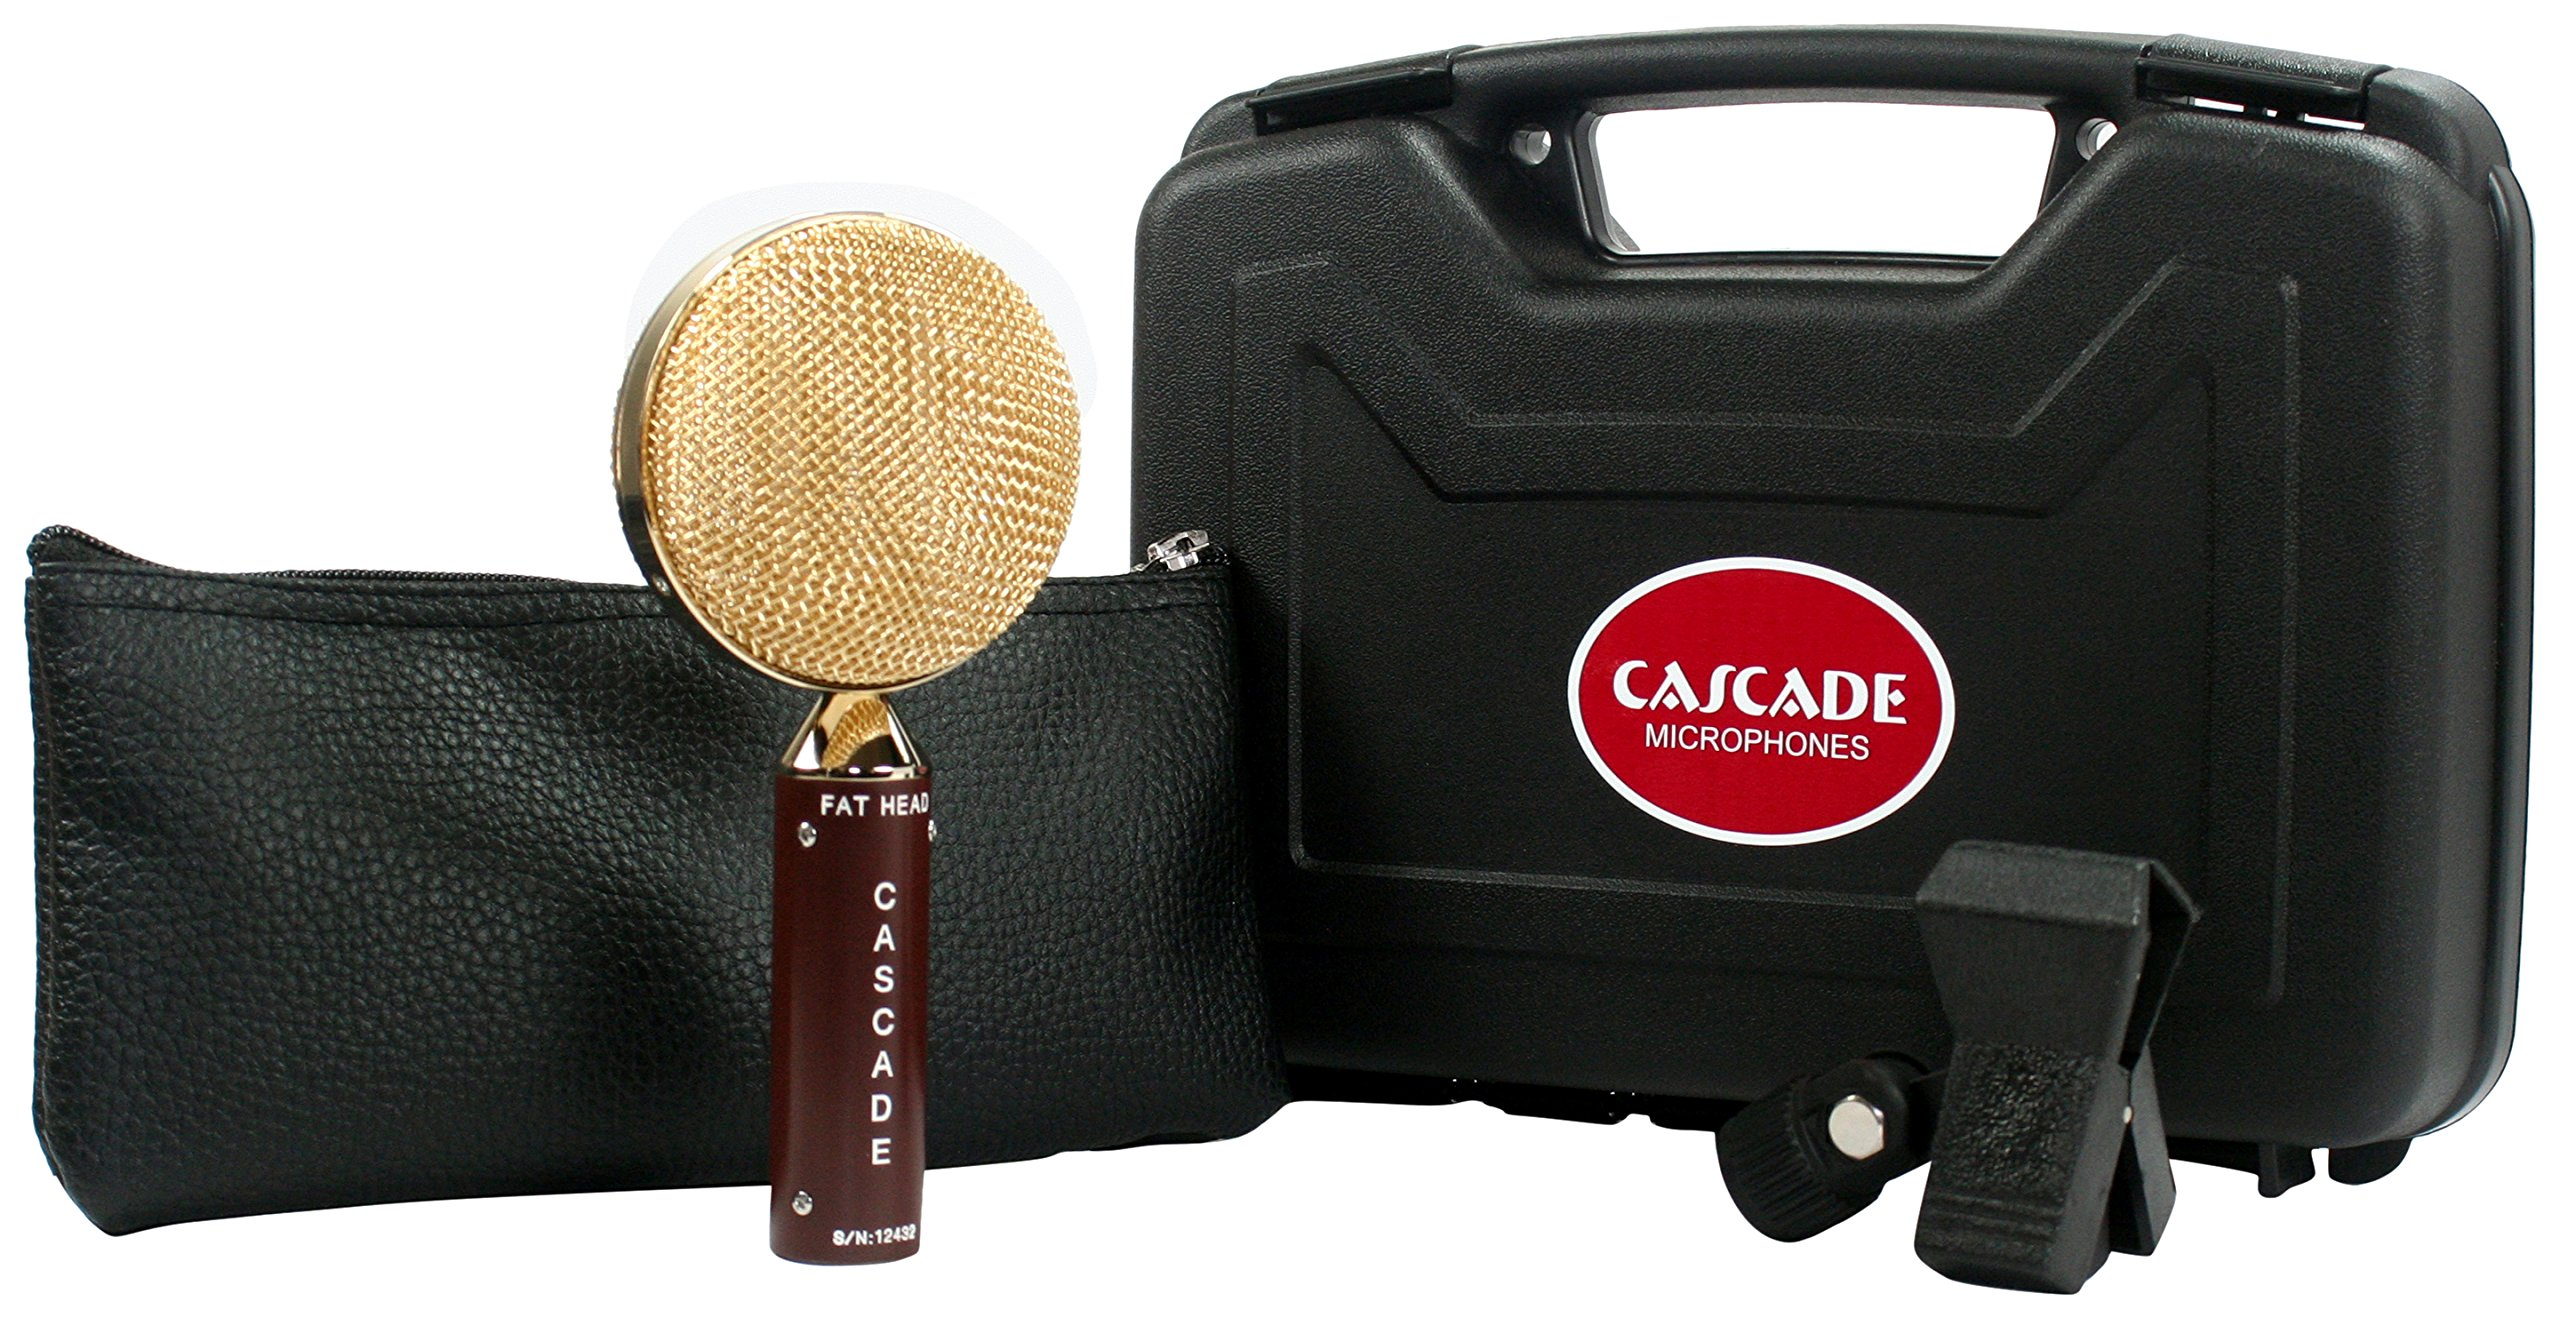 Cascade Microphones 98-G-A FAT HEAD Ribbon Microphone, Brown Body/Gold Grill